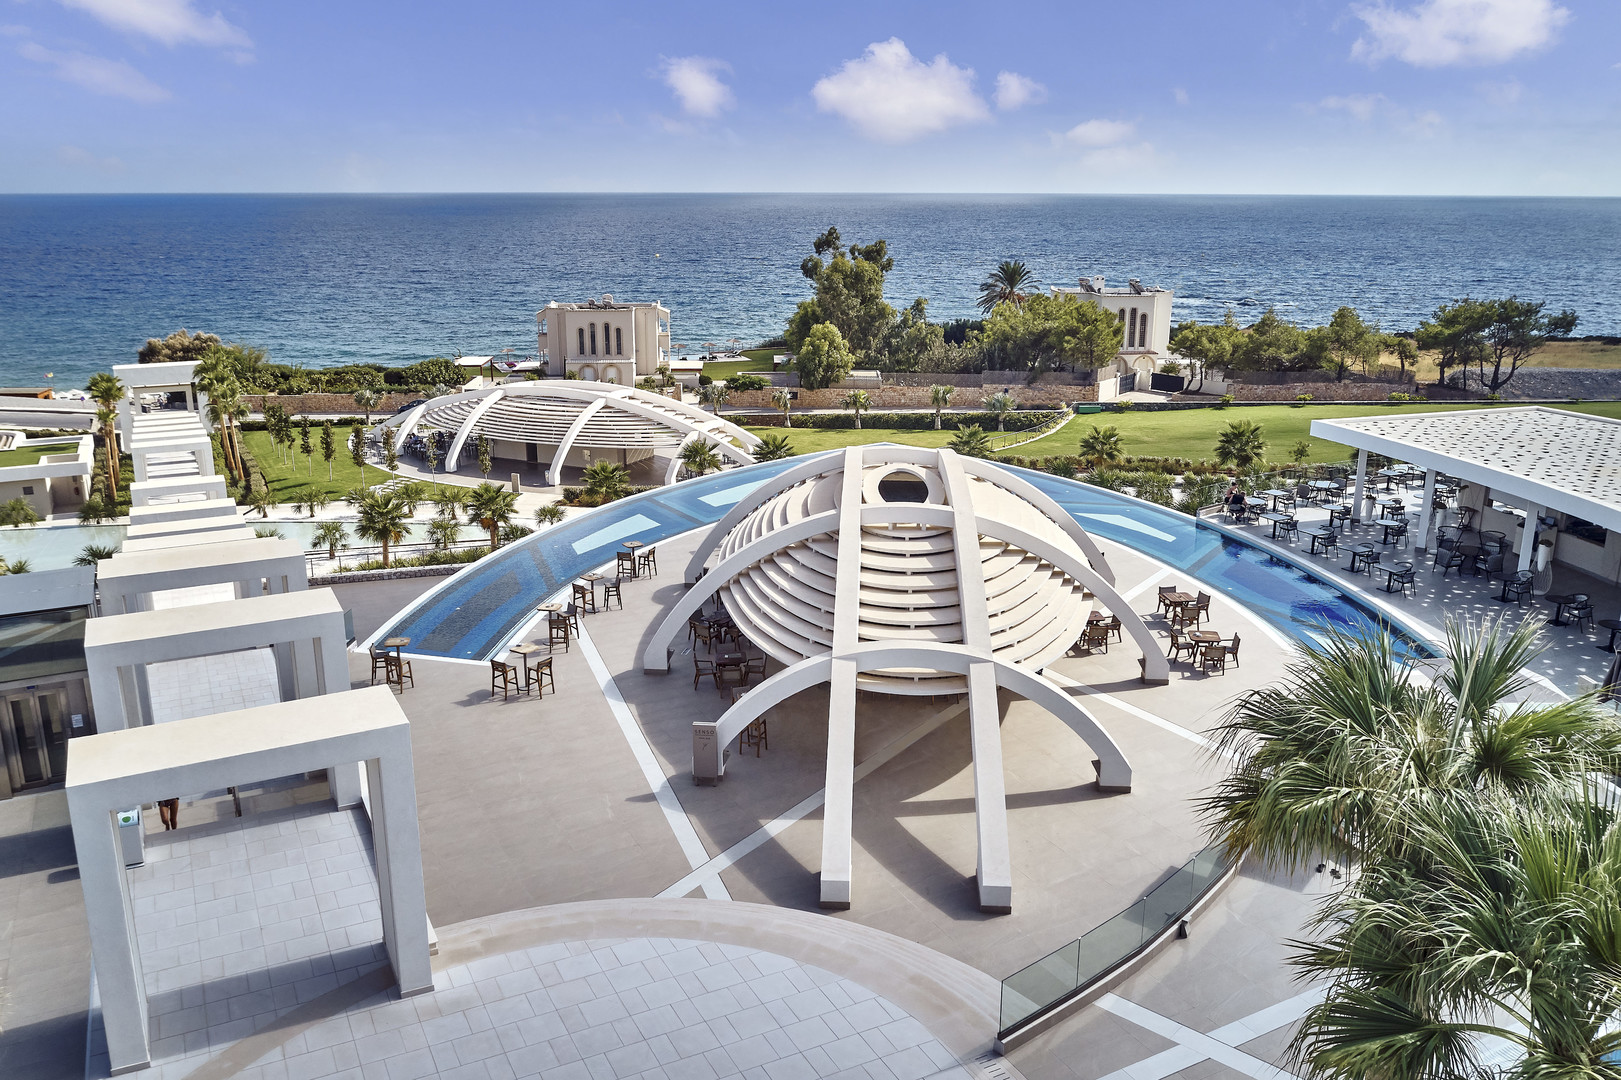 Hotel Mayia Exclusive Resort and Spa #6